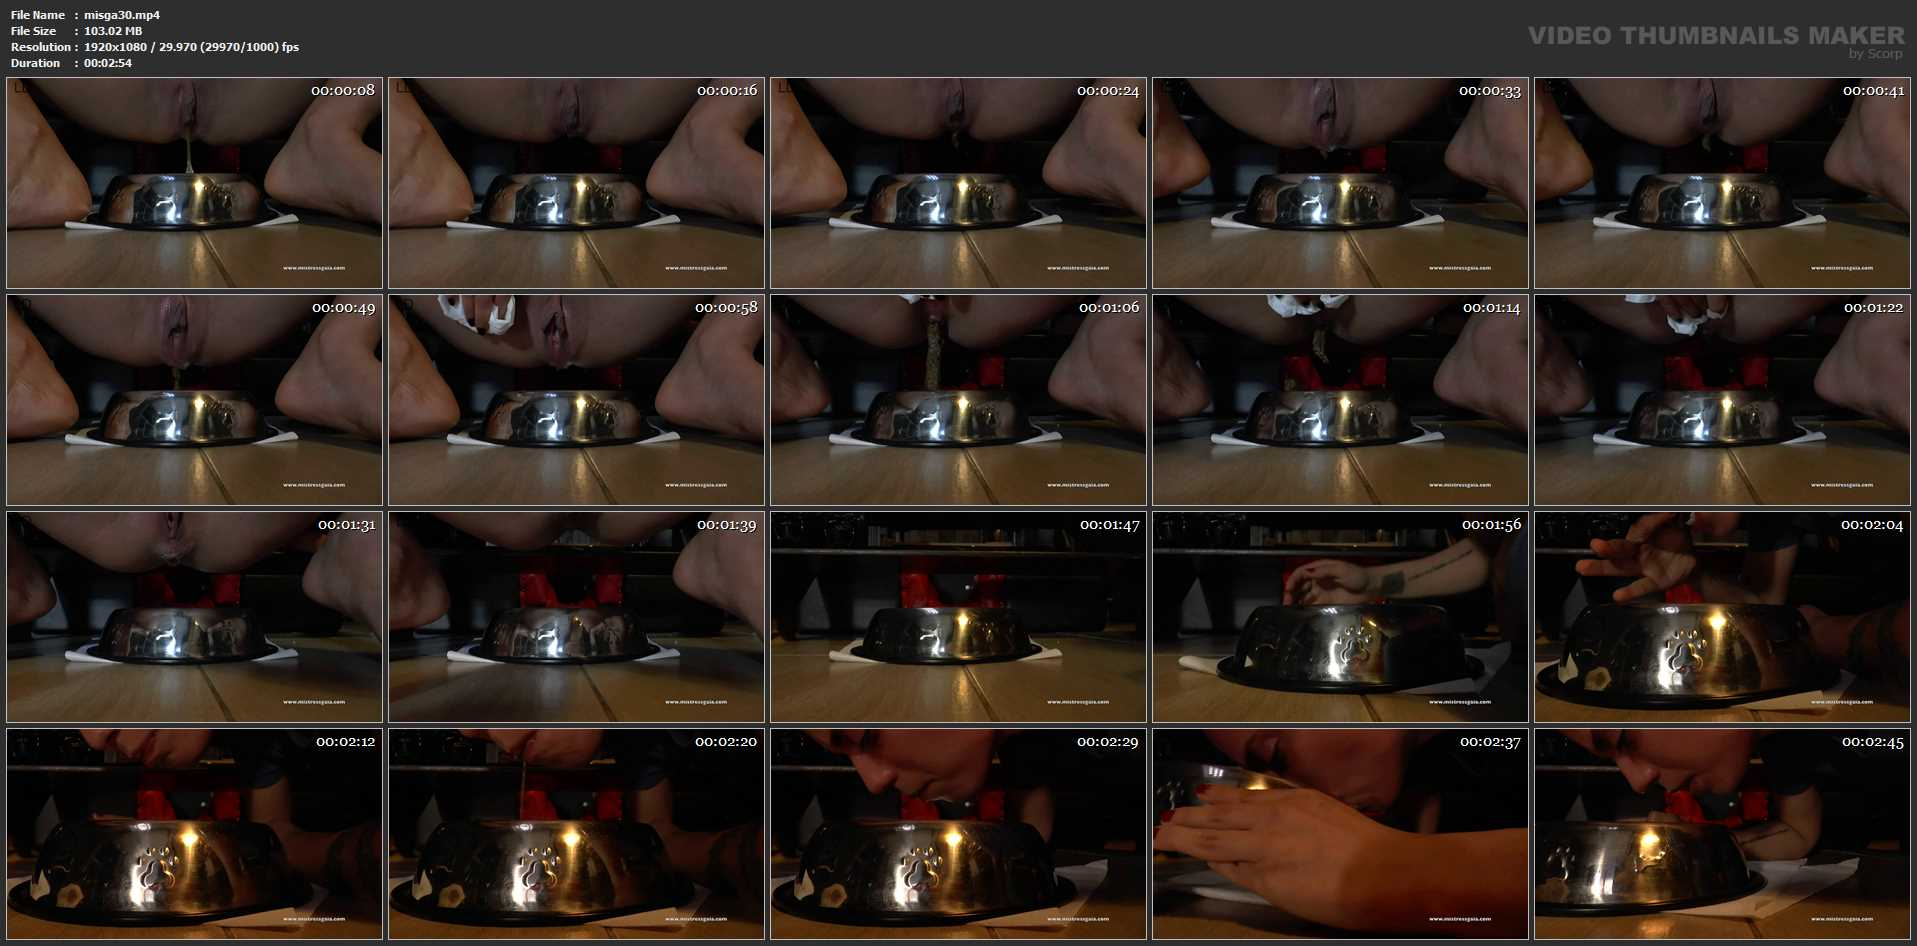 [MISTERSSGAIA / CLIPS4SALE] FAST REPAST. Featuring: Mistress Gaia [FULL HD][1080p][MP4]